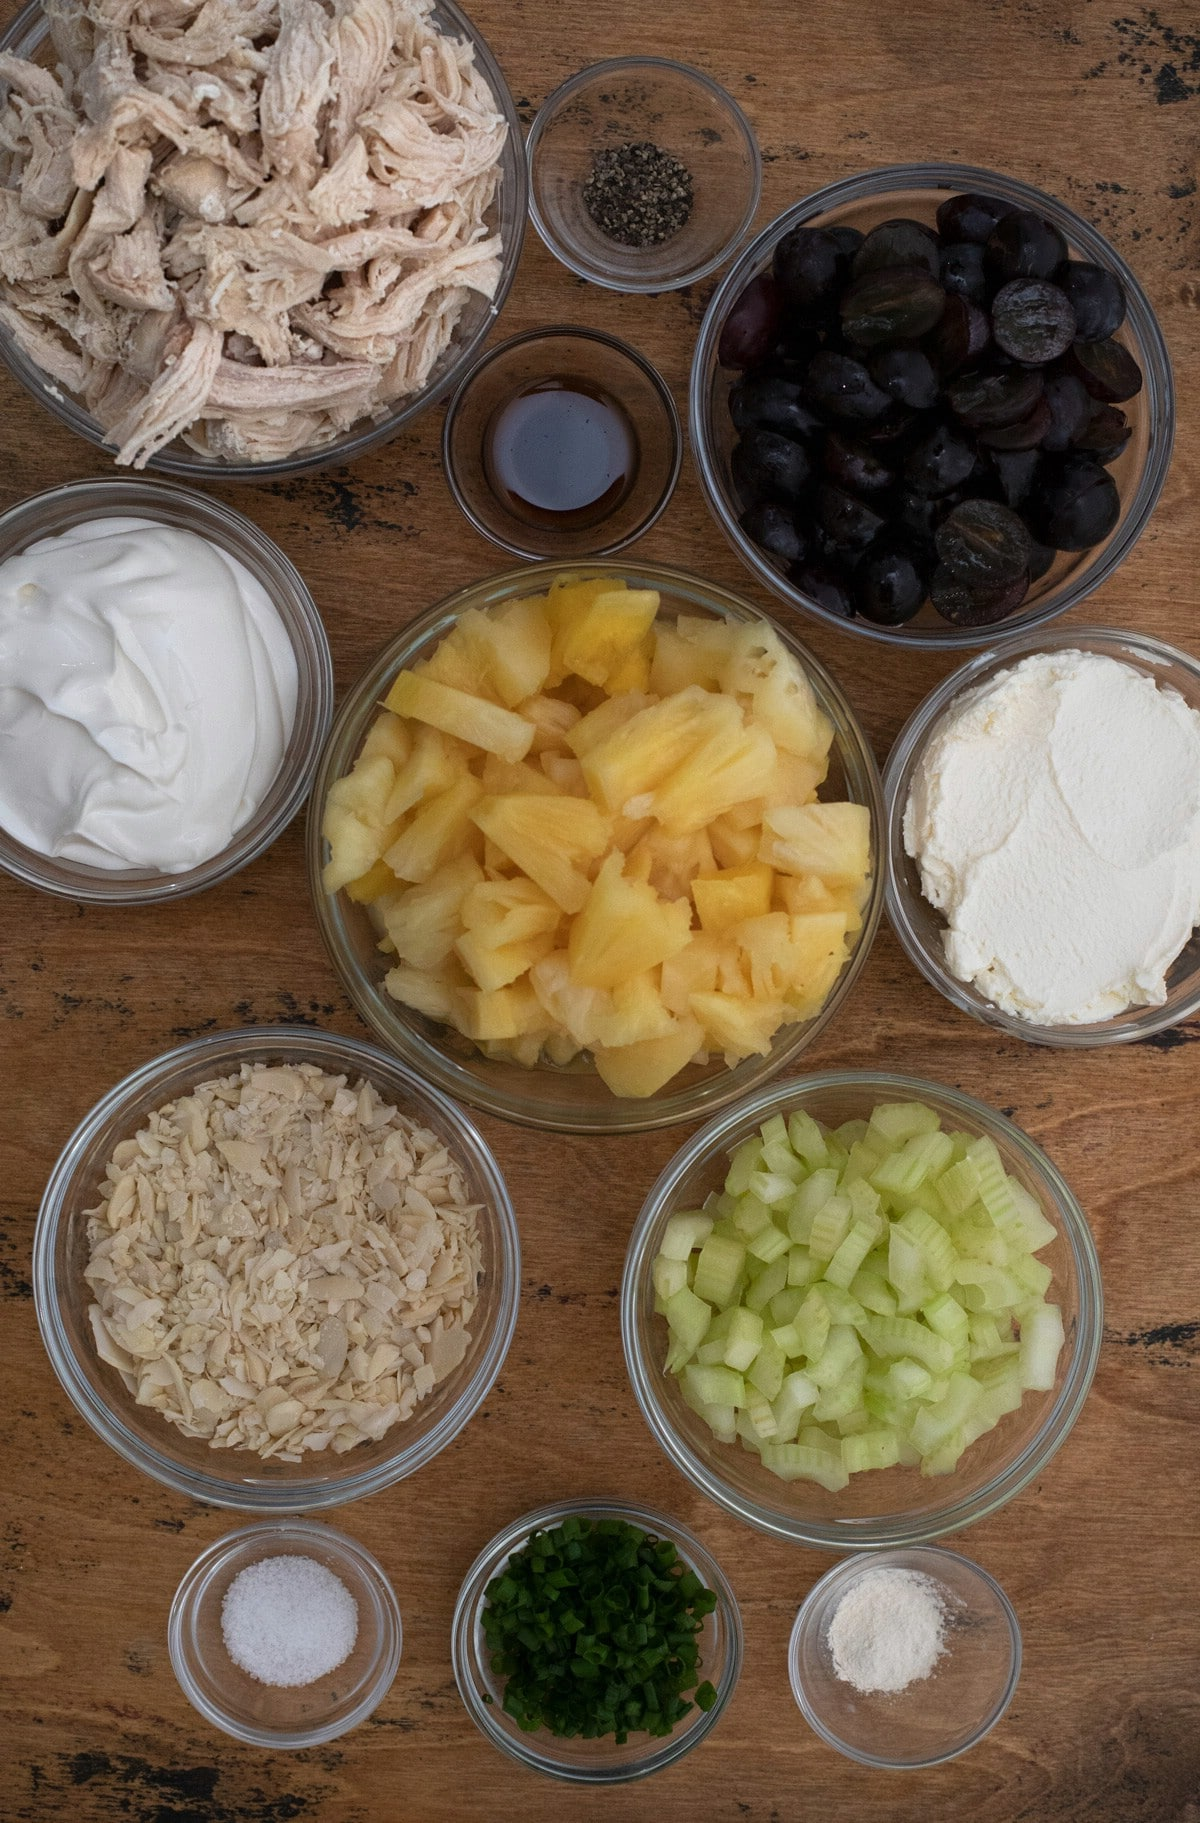 Ingredients for chicken salad in clear bowls on wooden table